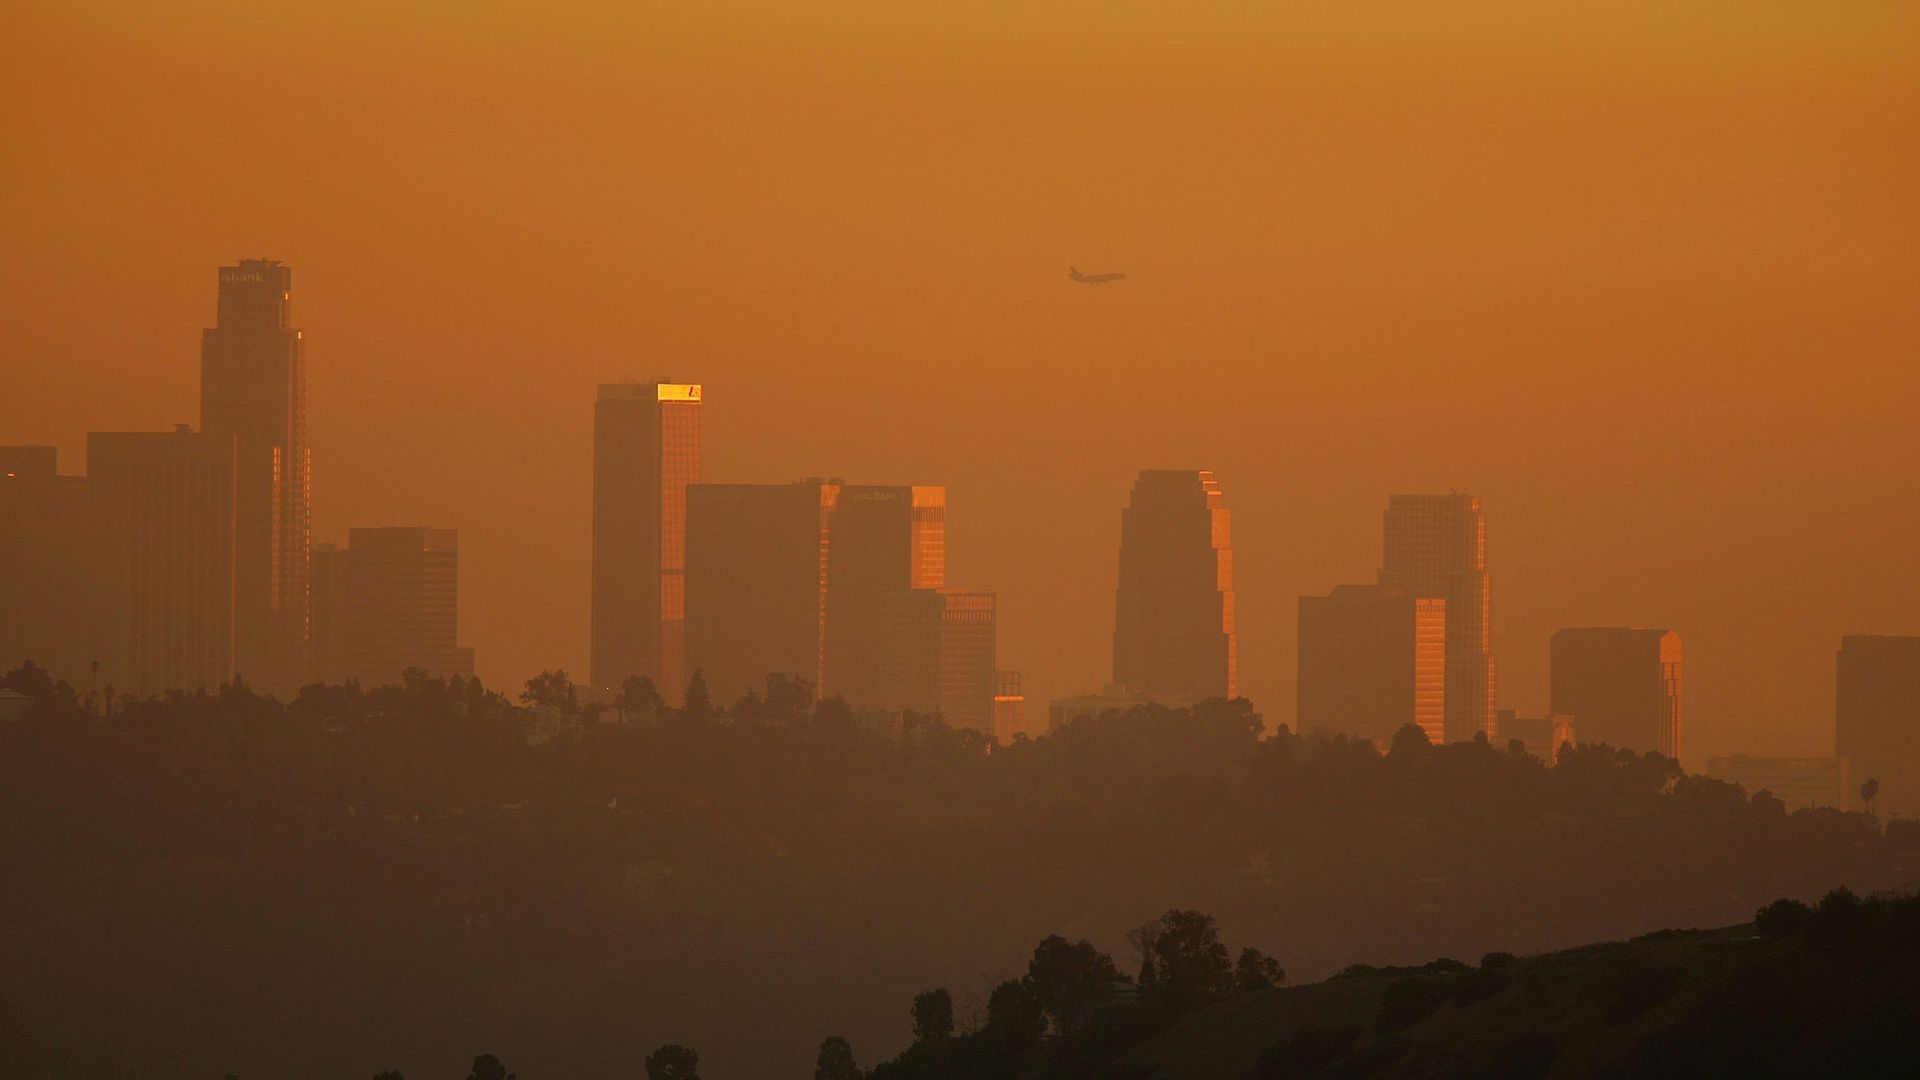 LA skyline enveloped in smog shortly before sunset on November 17, 2006.